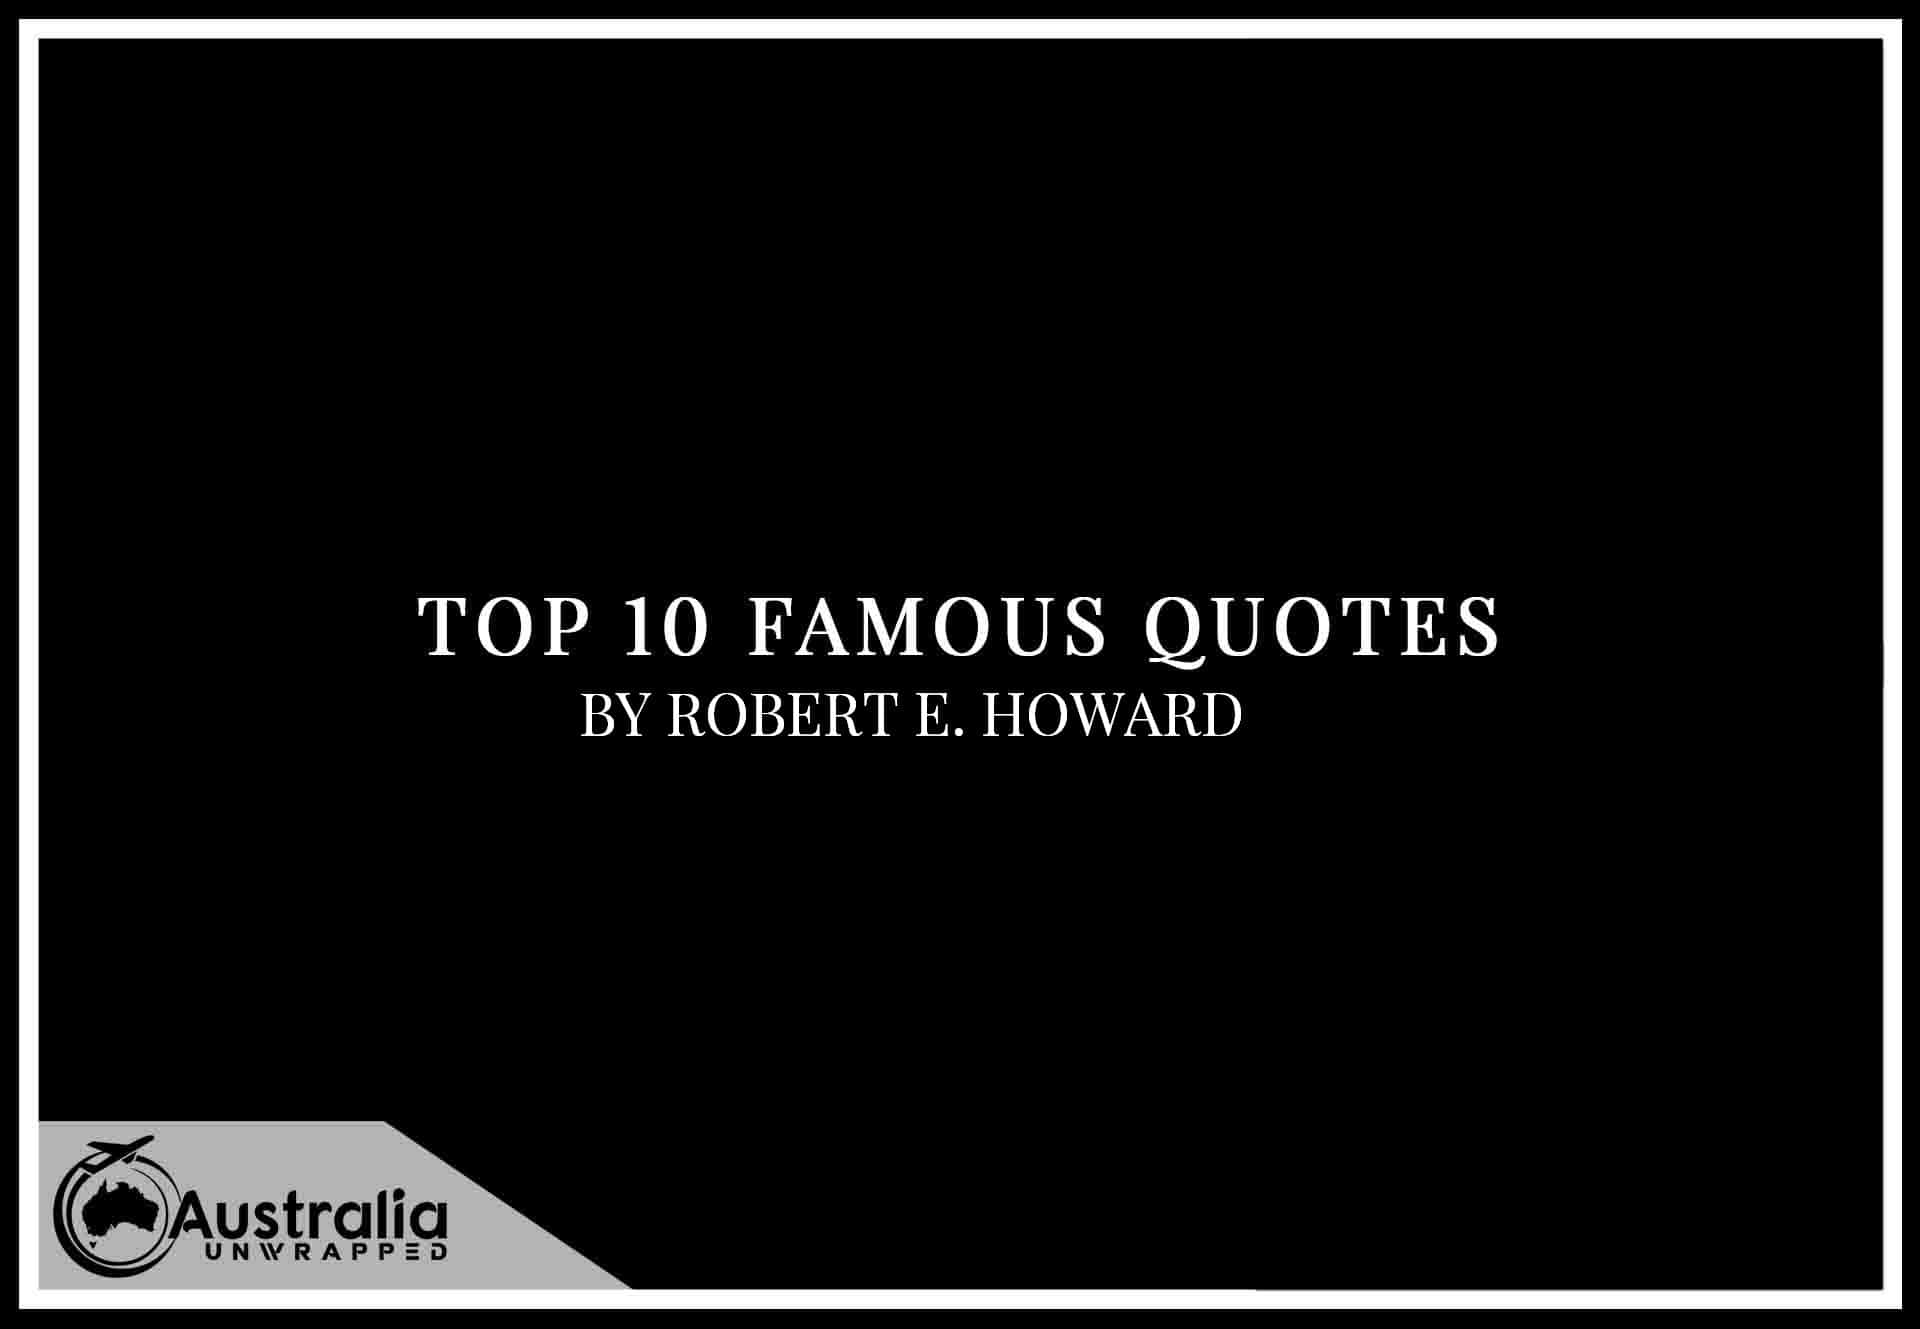 Top 10 Famous Quotes by Author Robert E. Howard